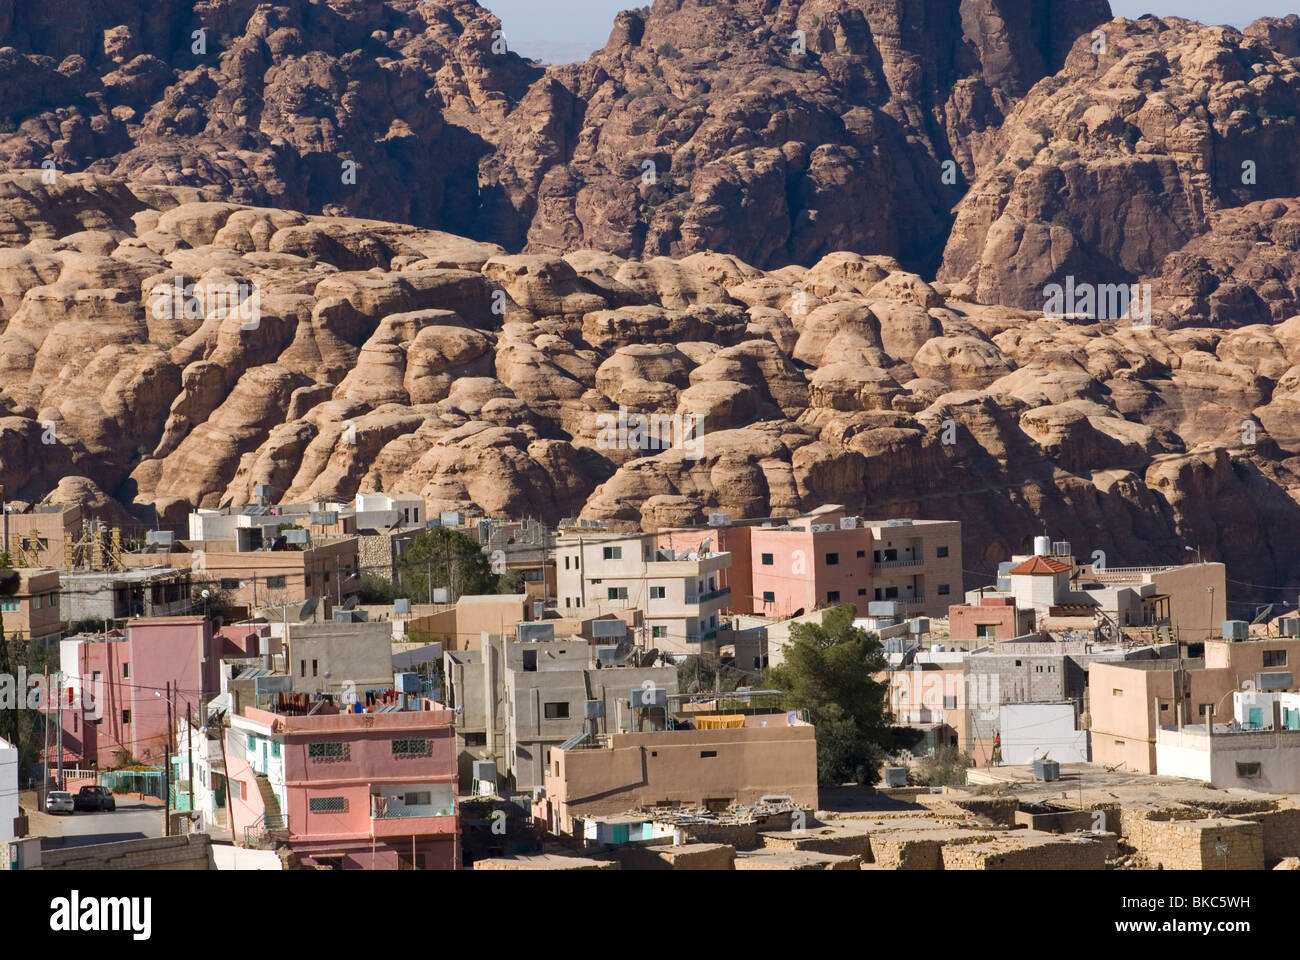 The village of Wadi Musa, close to the archaeological site of Petra. Jordan. - Stock Image